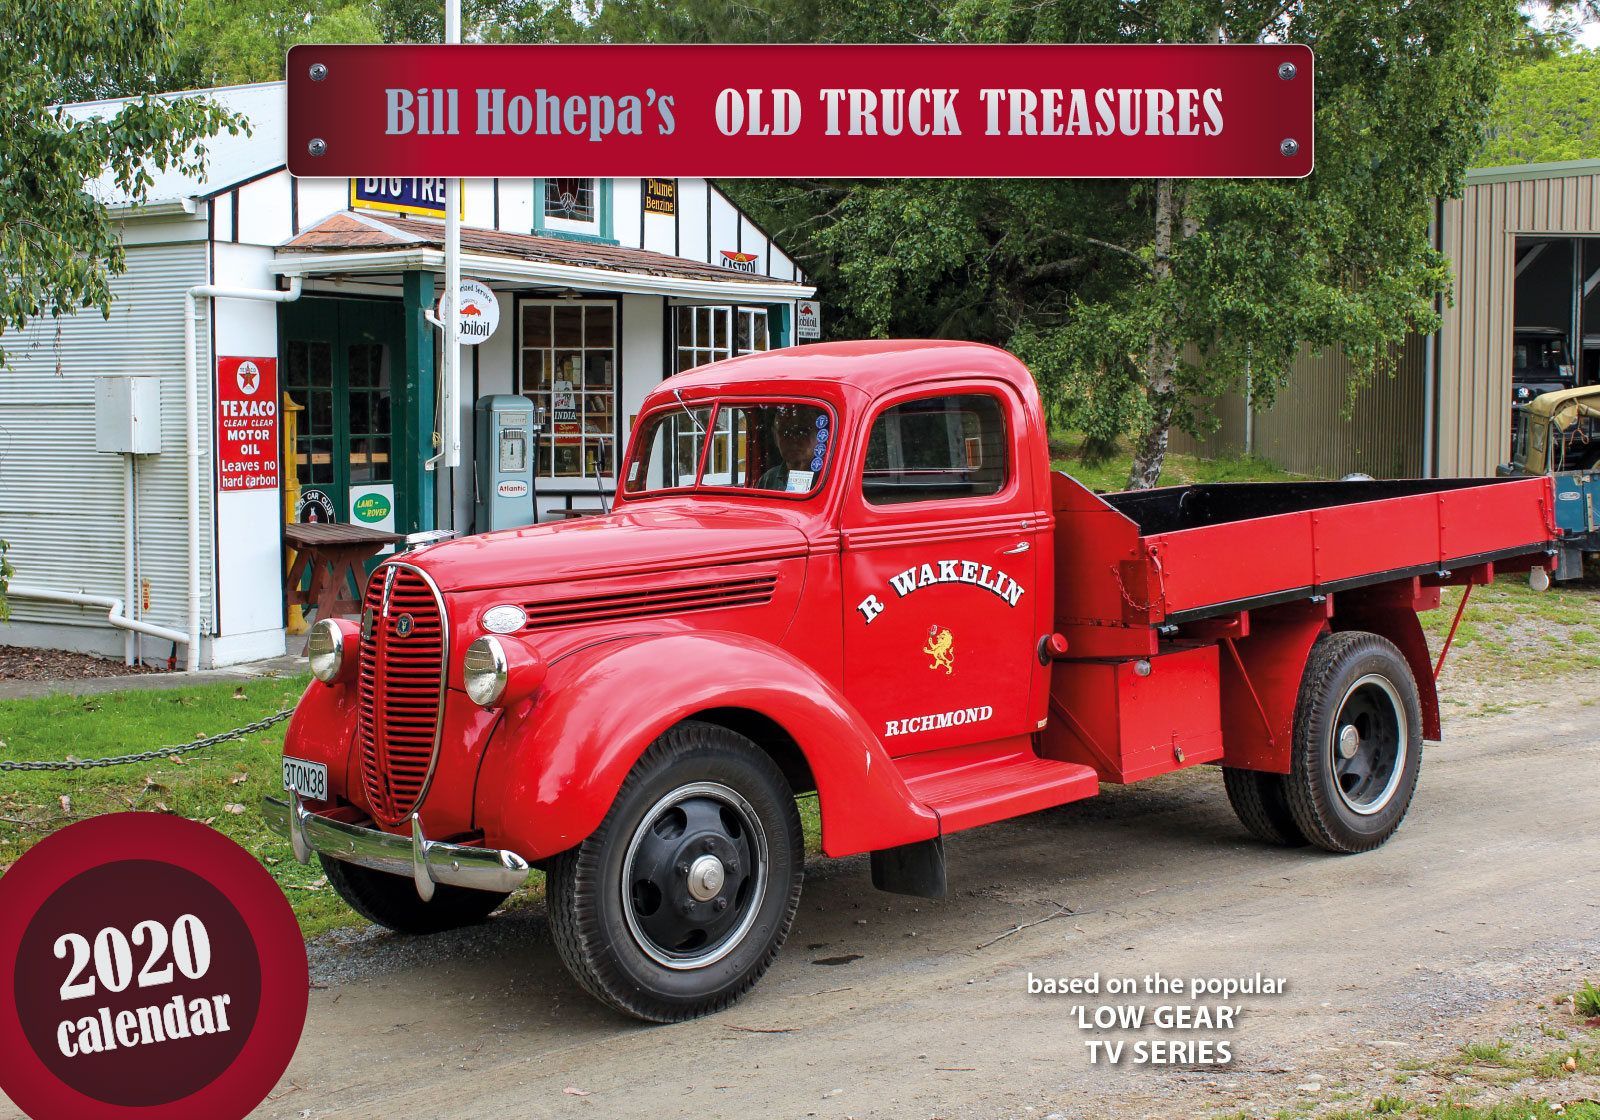 Bill Hohepa's Old Truck Treasures 2019